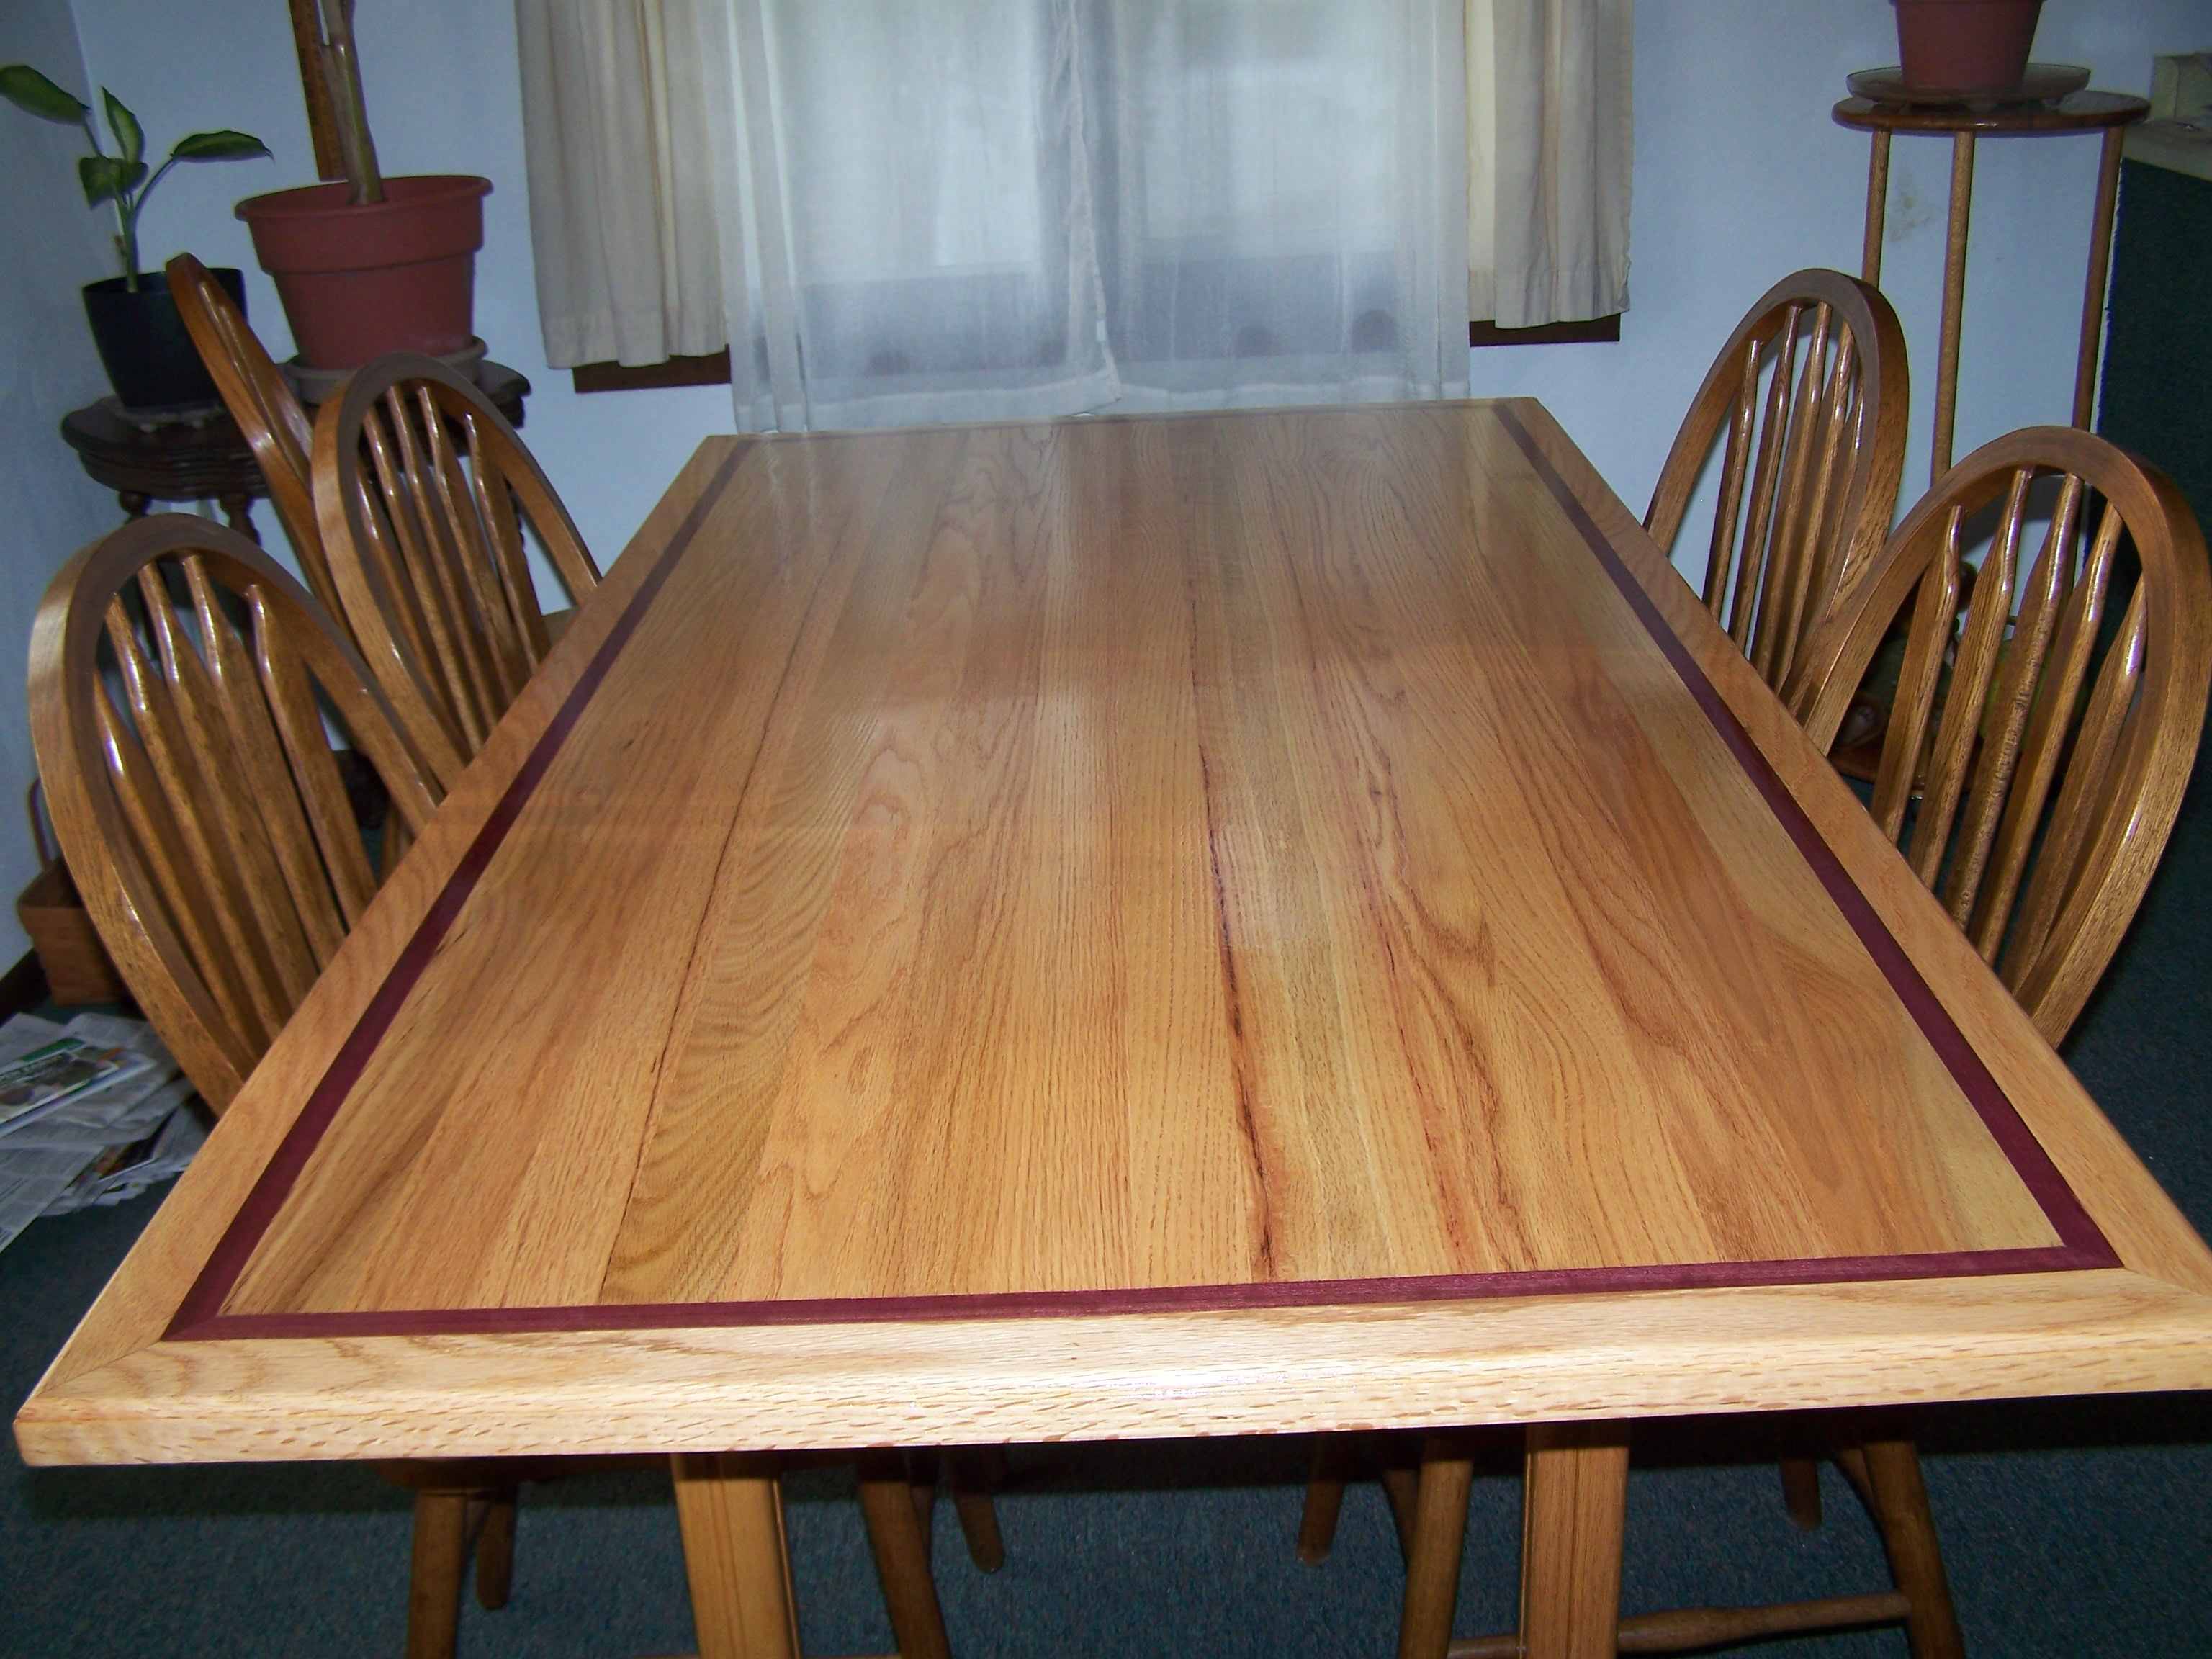 Dinningroom table with purple heart wood inlay... Not